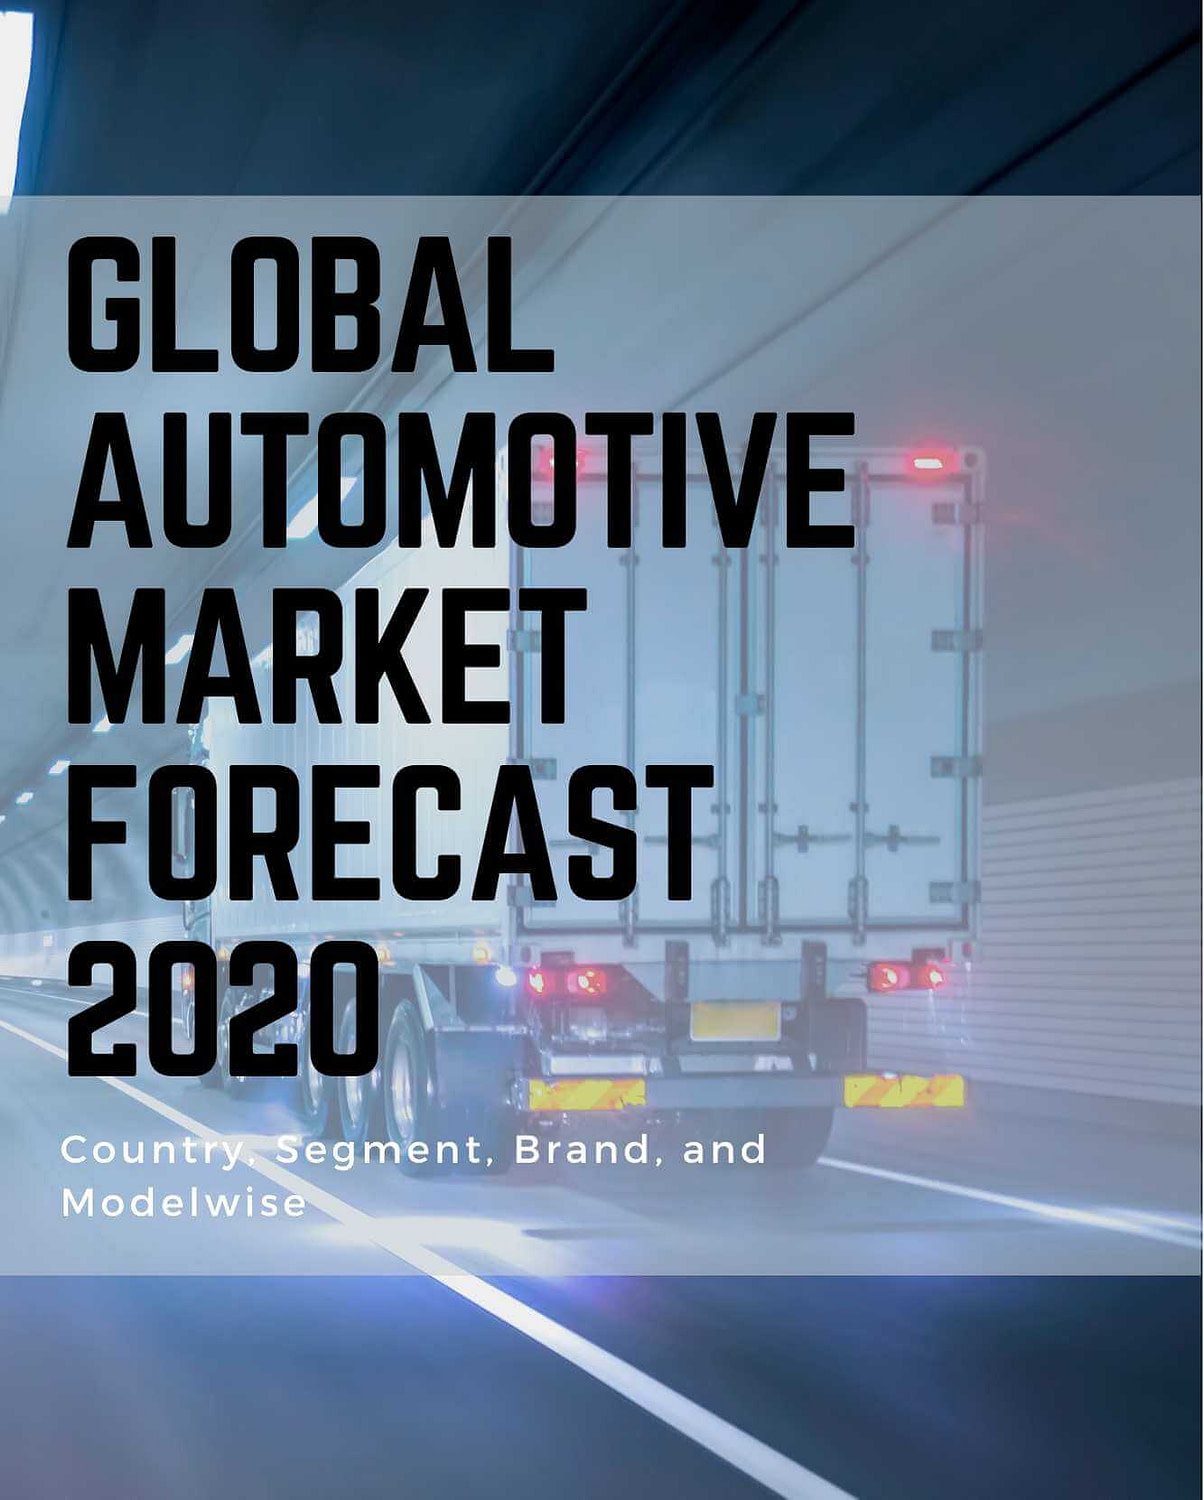 Global Automotive Market Forecast 2020 Analysis